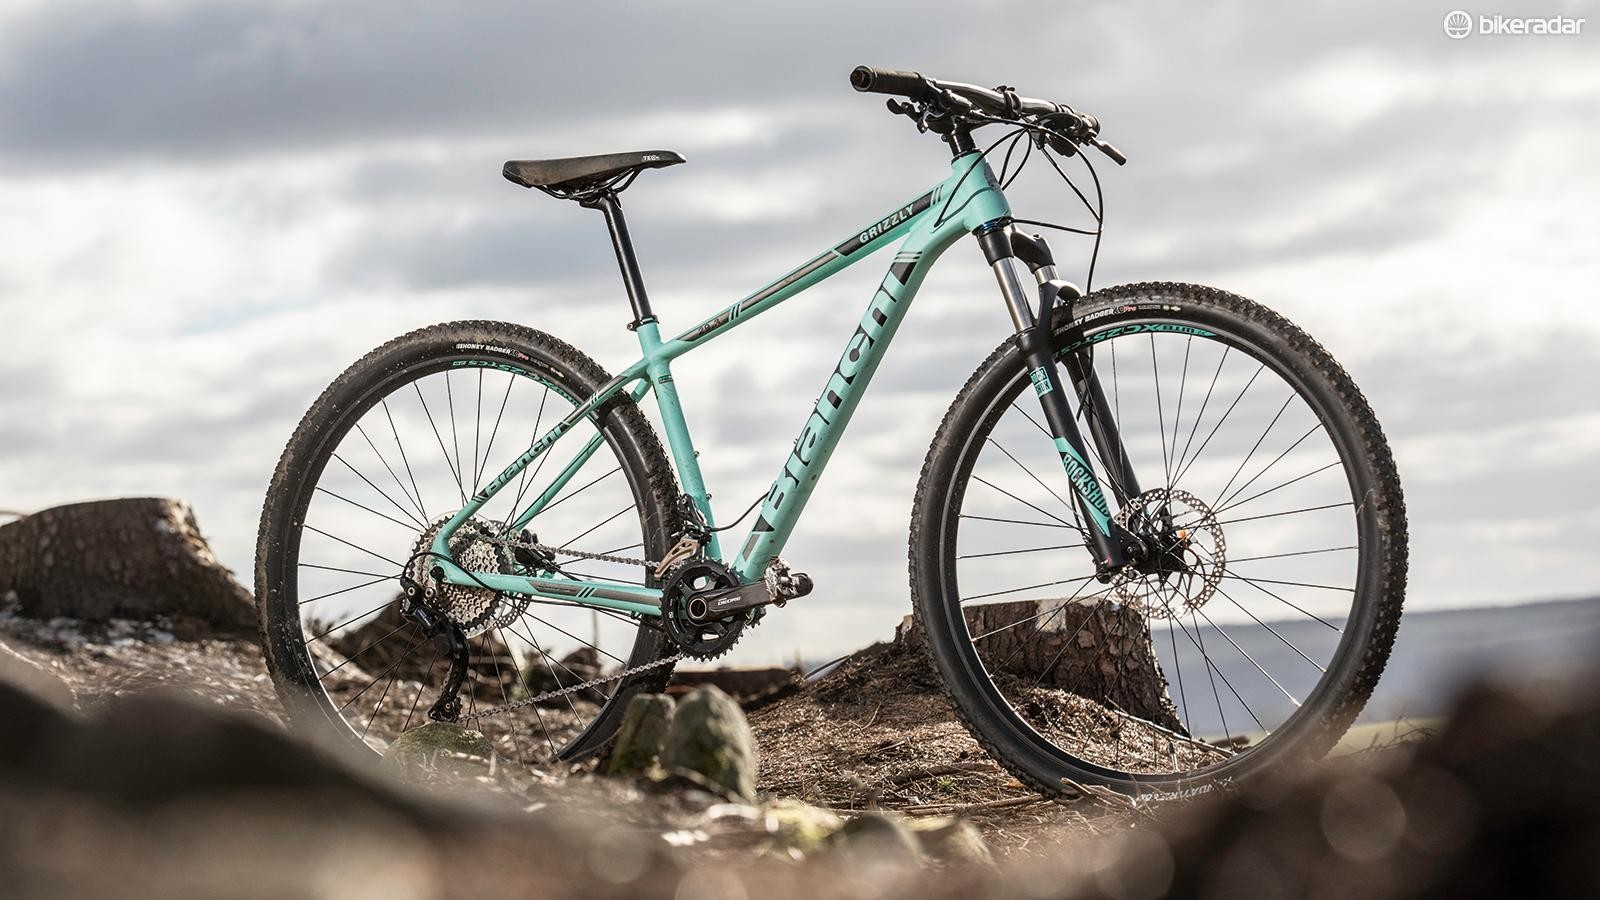 Bianchi's Grizzly 29.3